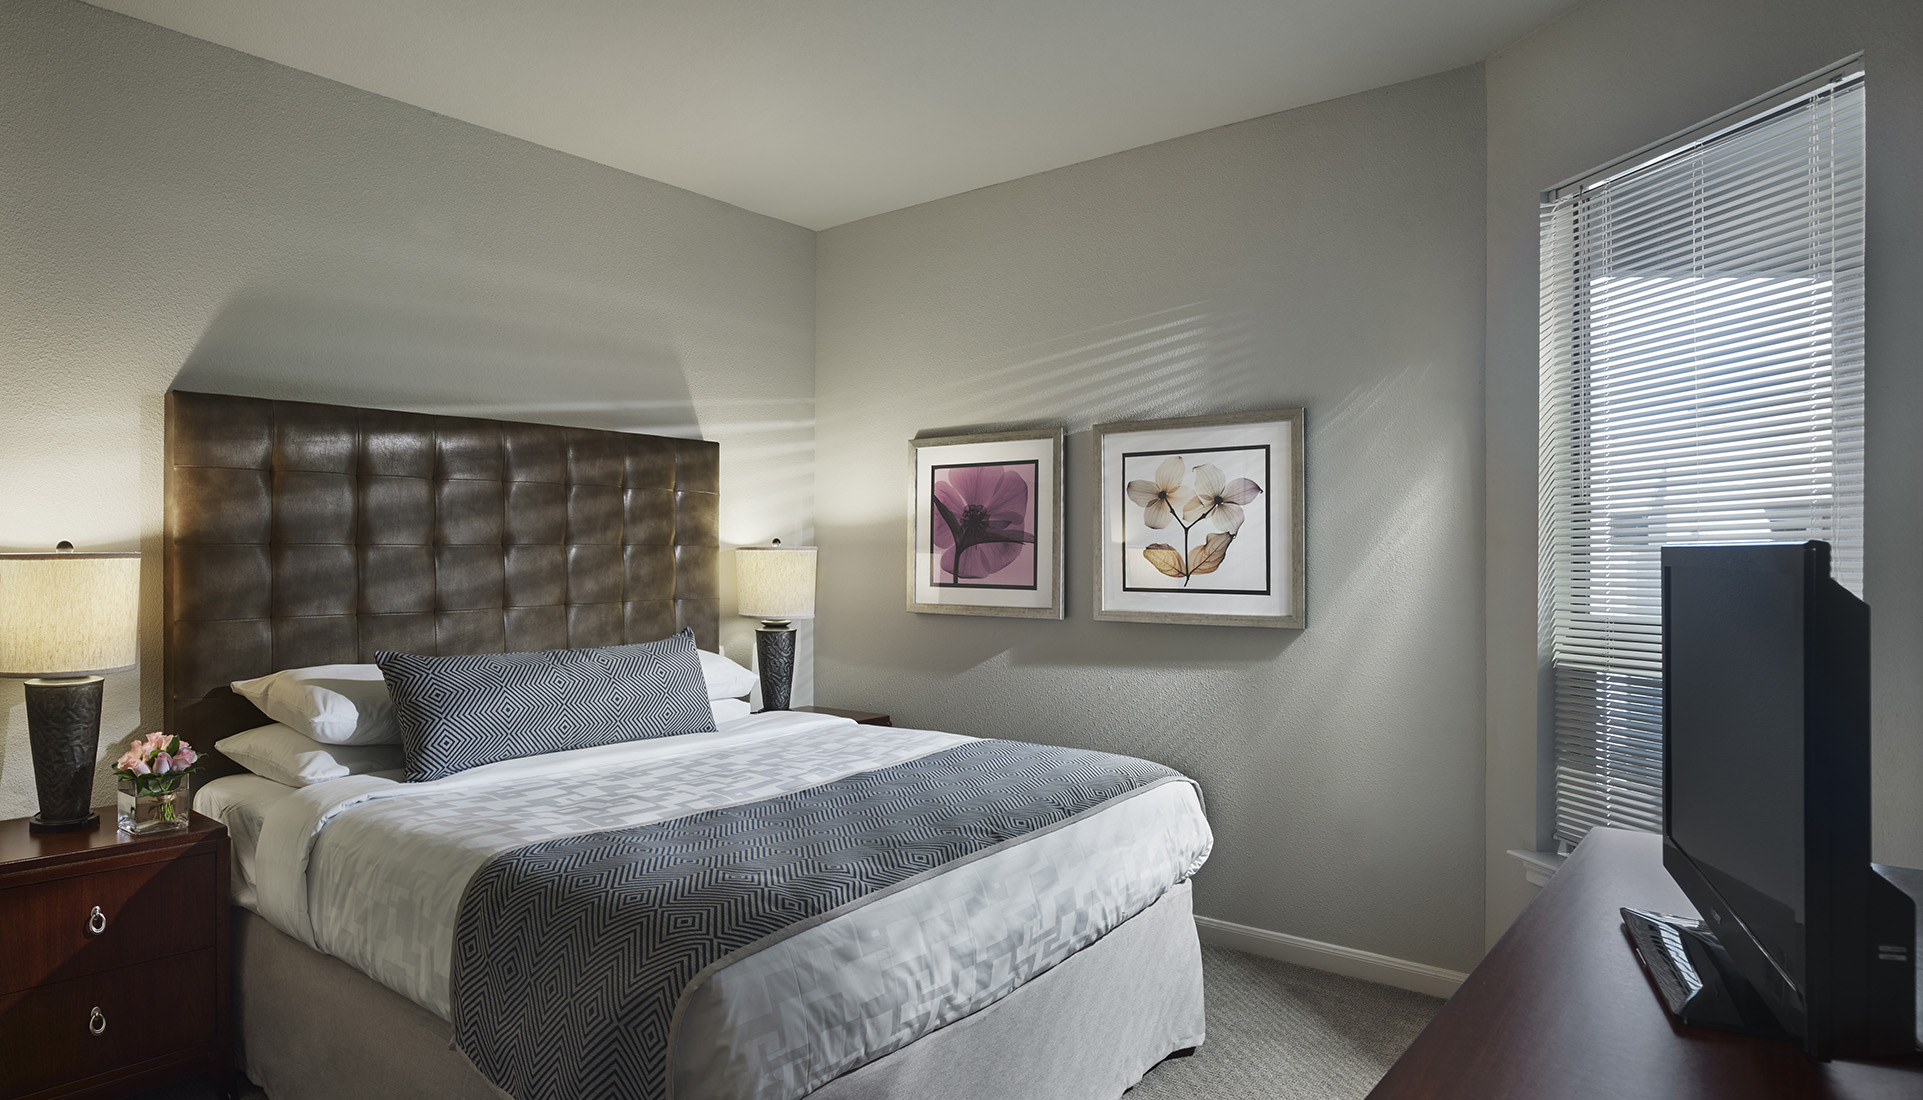 AVE Clifton furnished bed room with natural sunlight